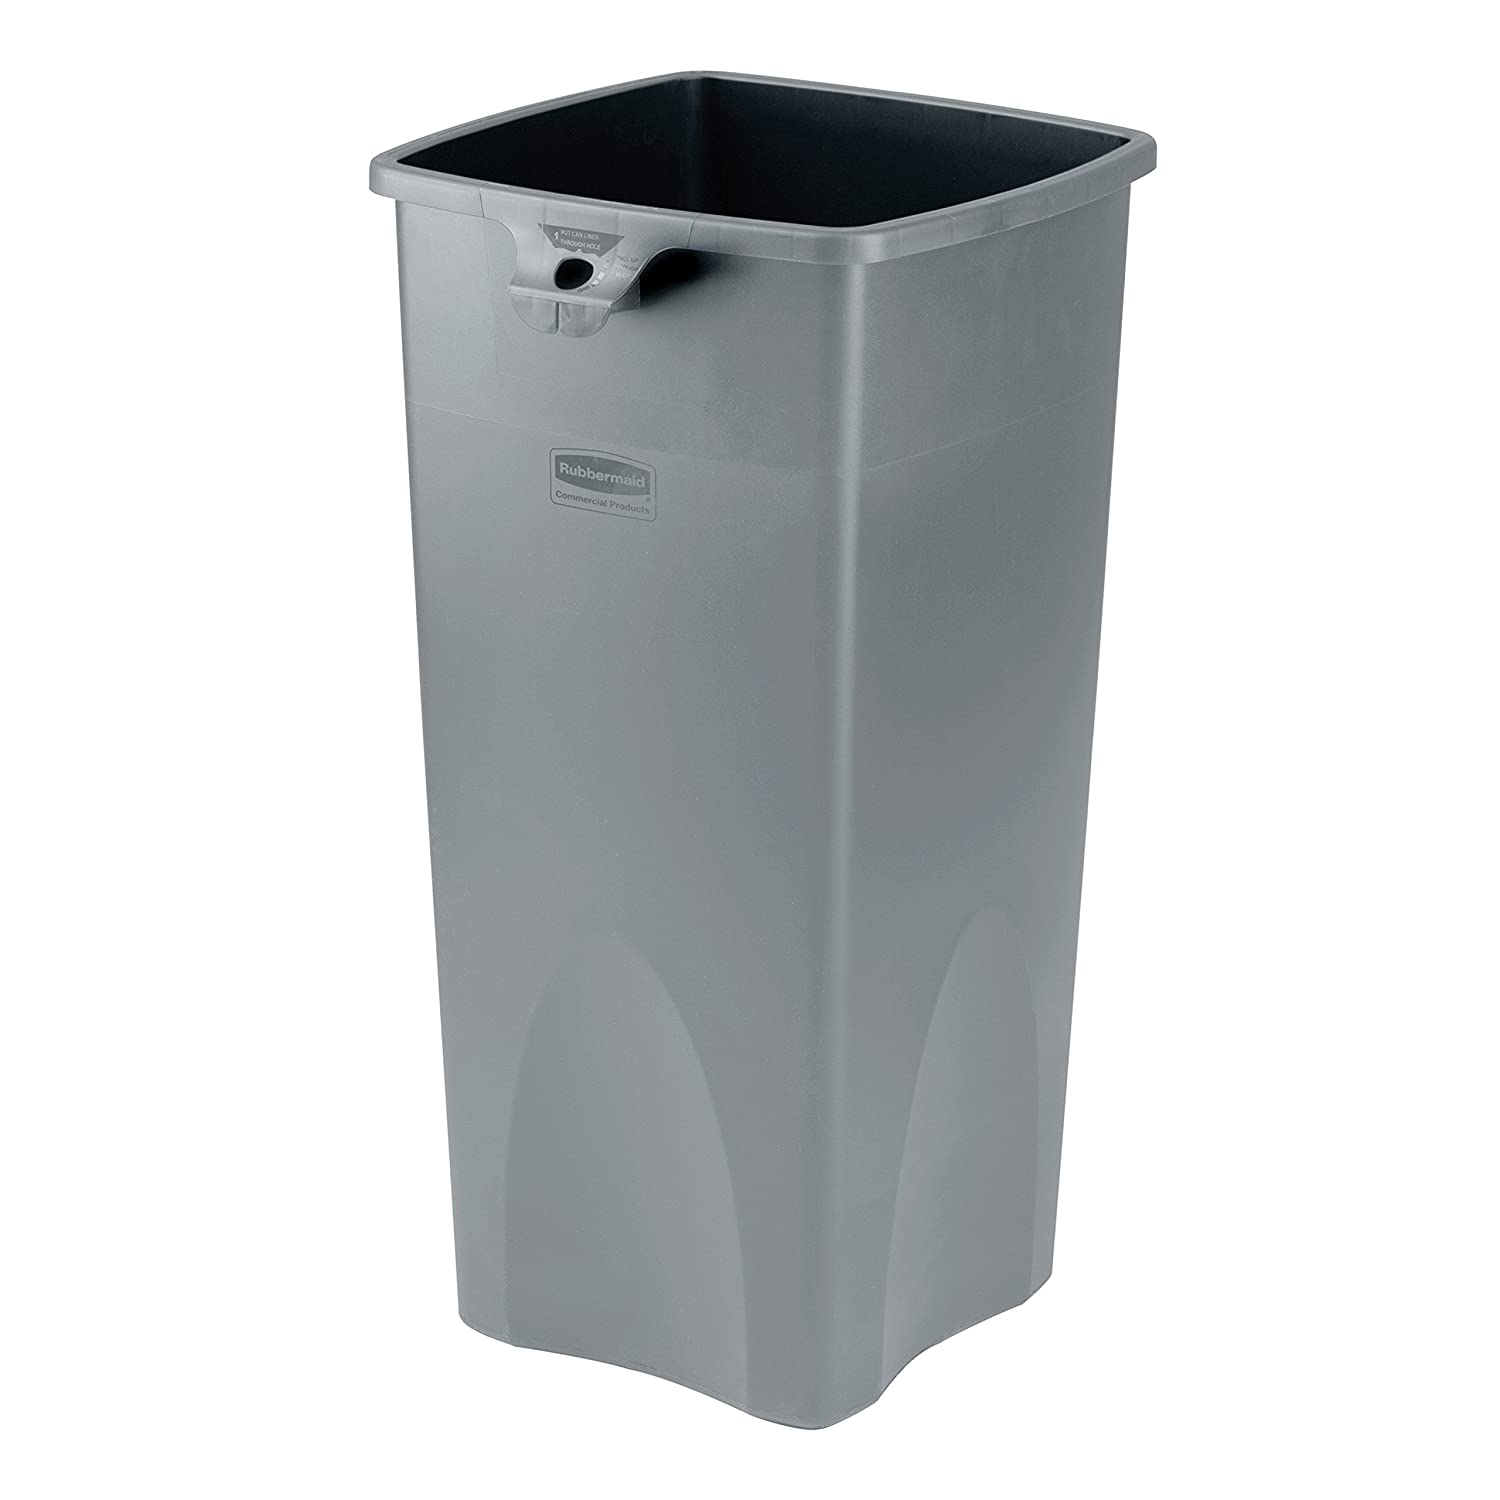 Rubbermaid Commercial Untouchable Plastic Waste Bin Polyethylene 87 Litres - Grey Newell Rubbermaid FG356988GRAY COURCP356988GY